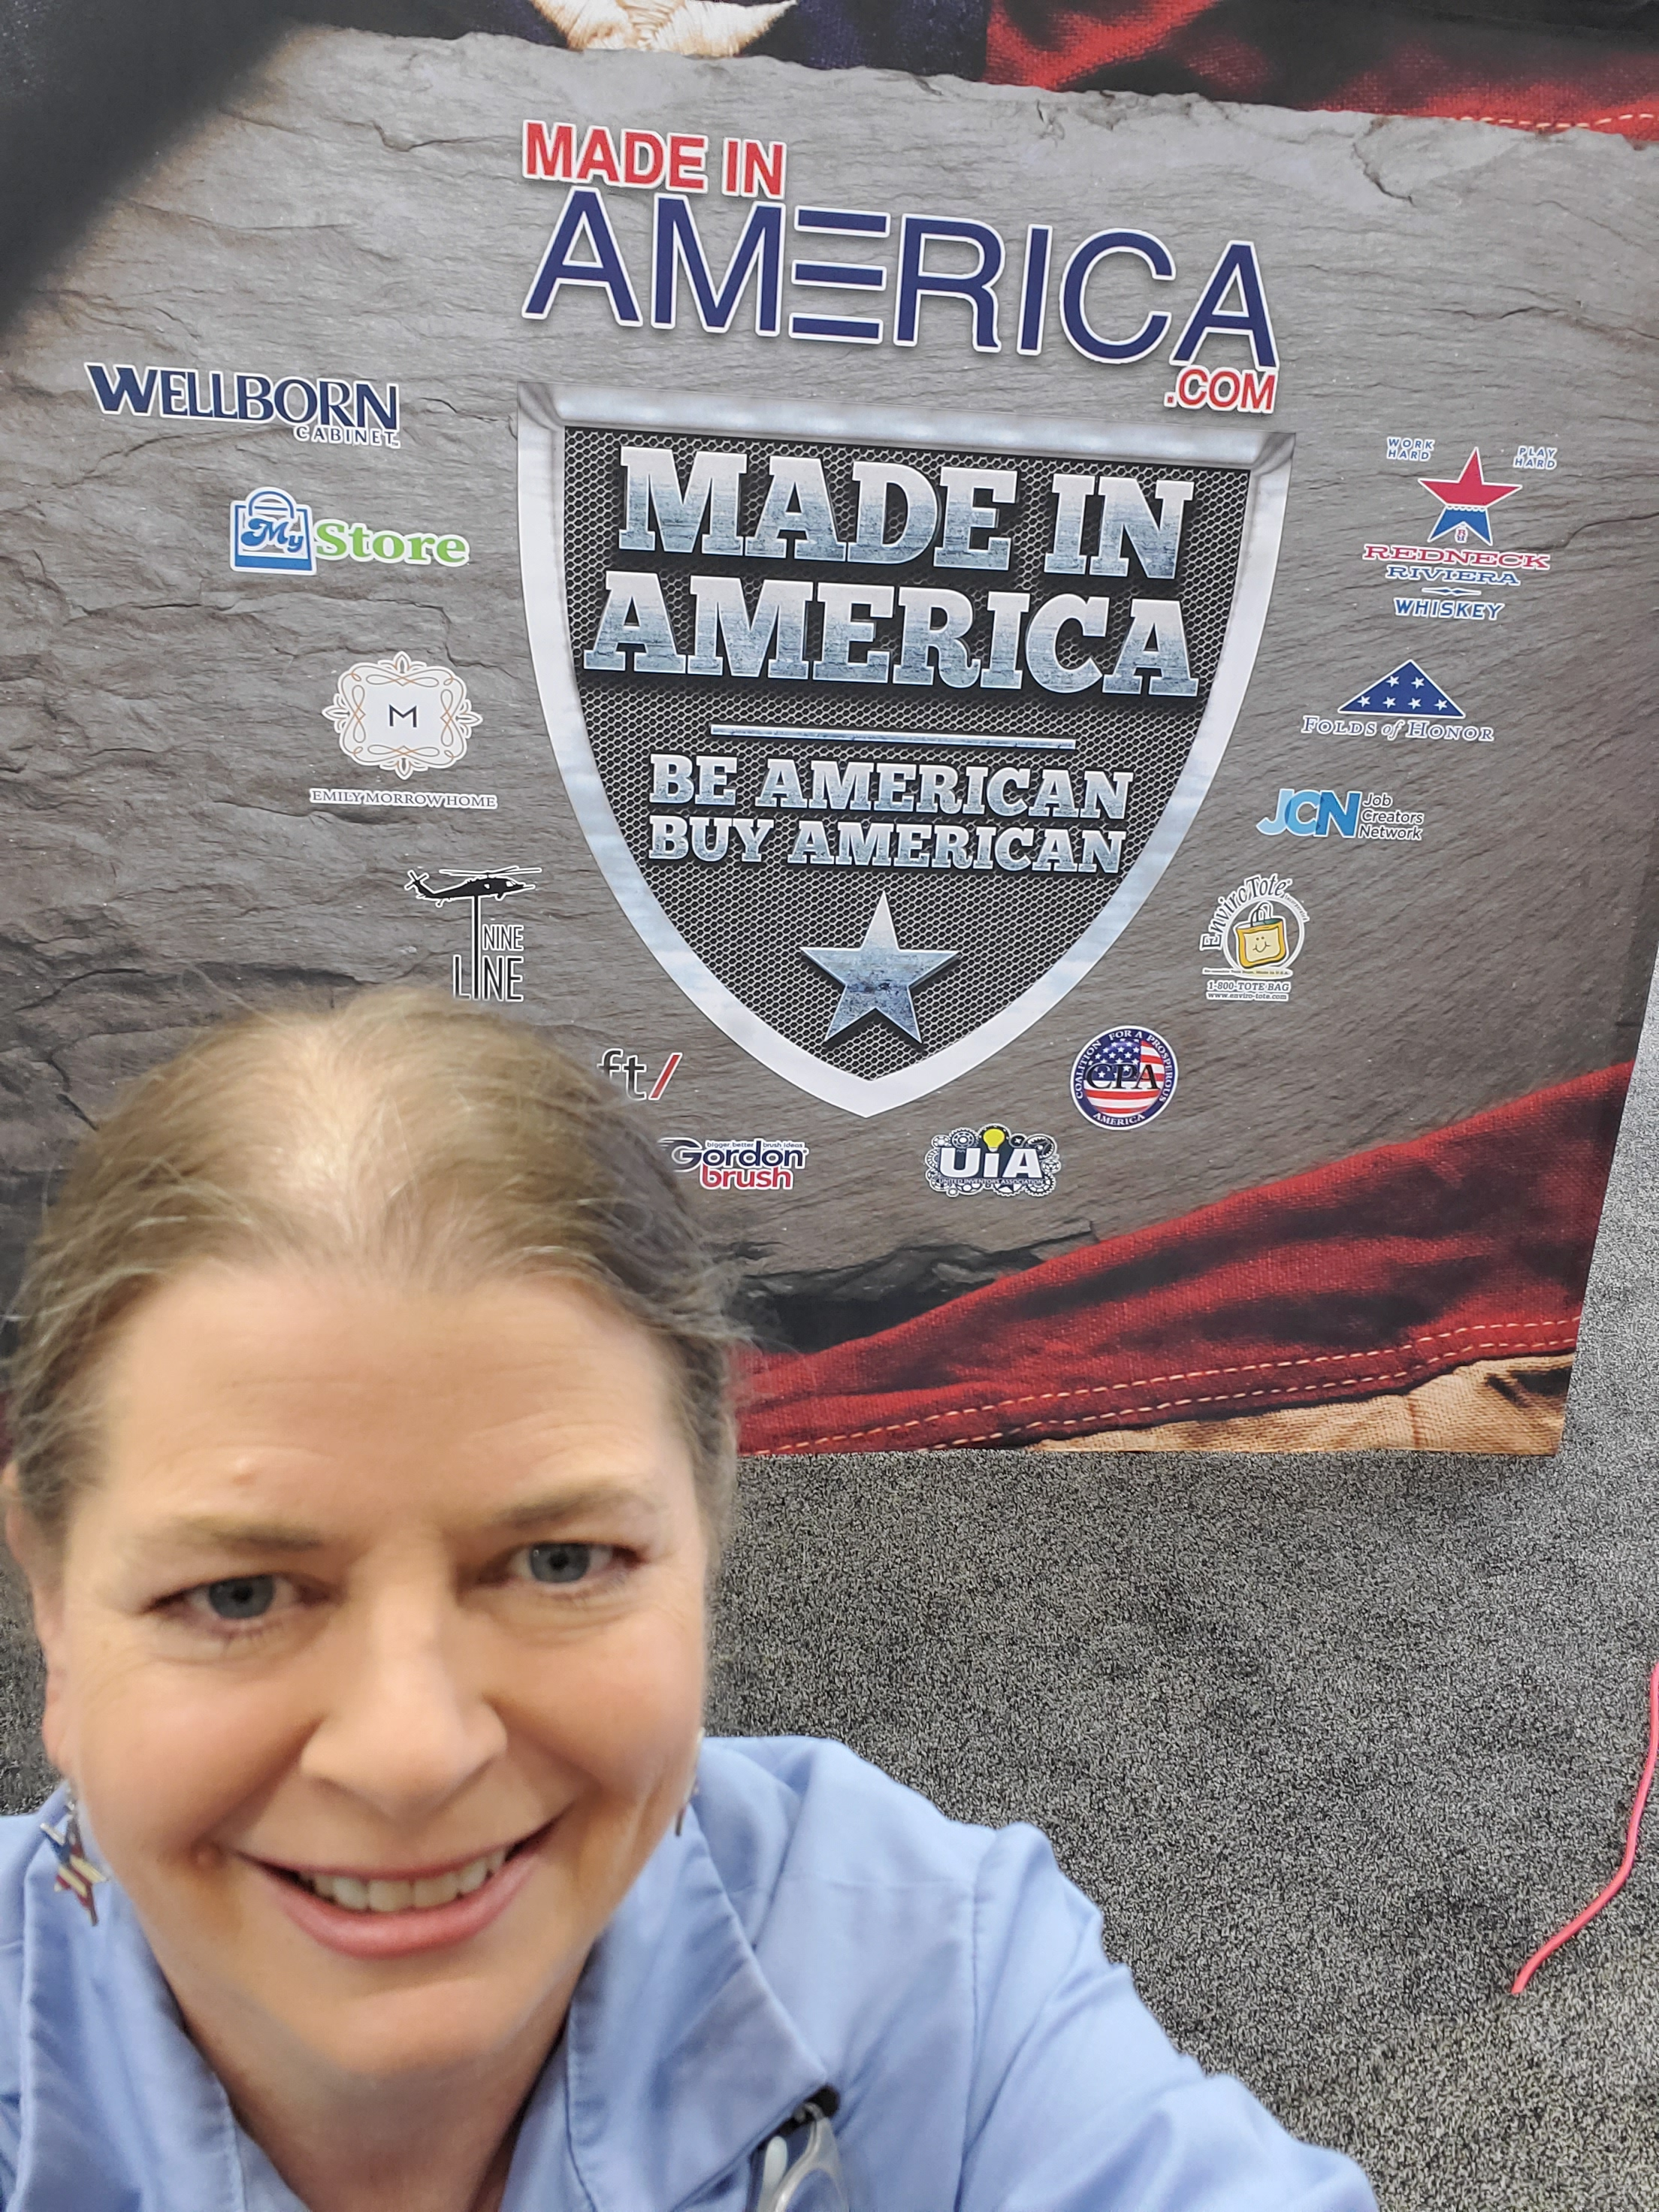 Connie the Patriot at the Made in America 2019 Trade Show